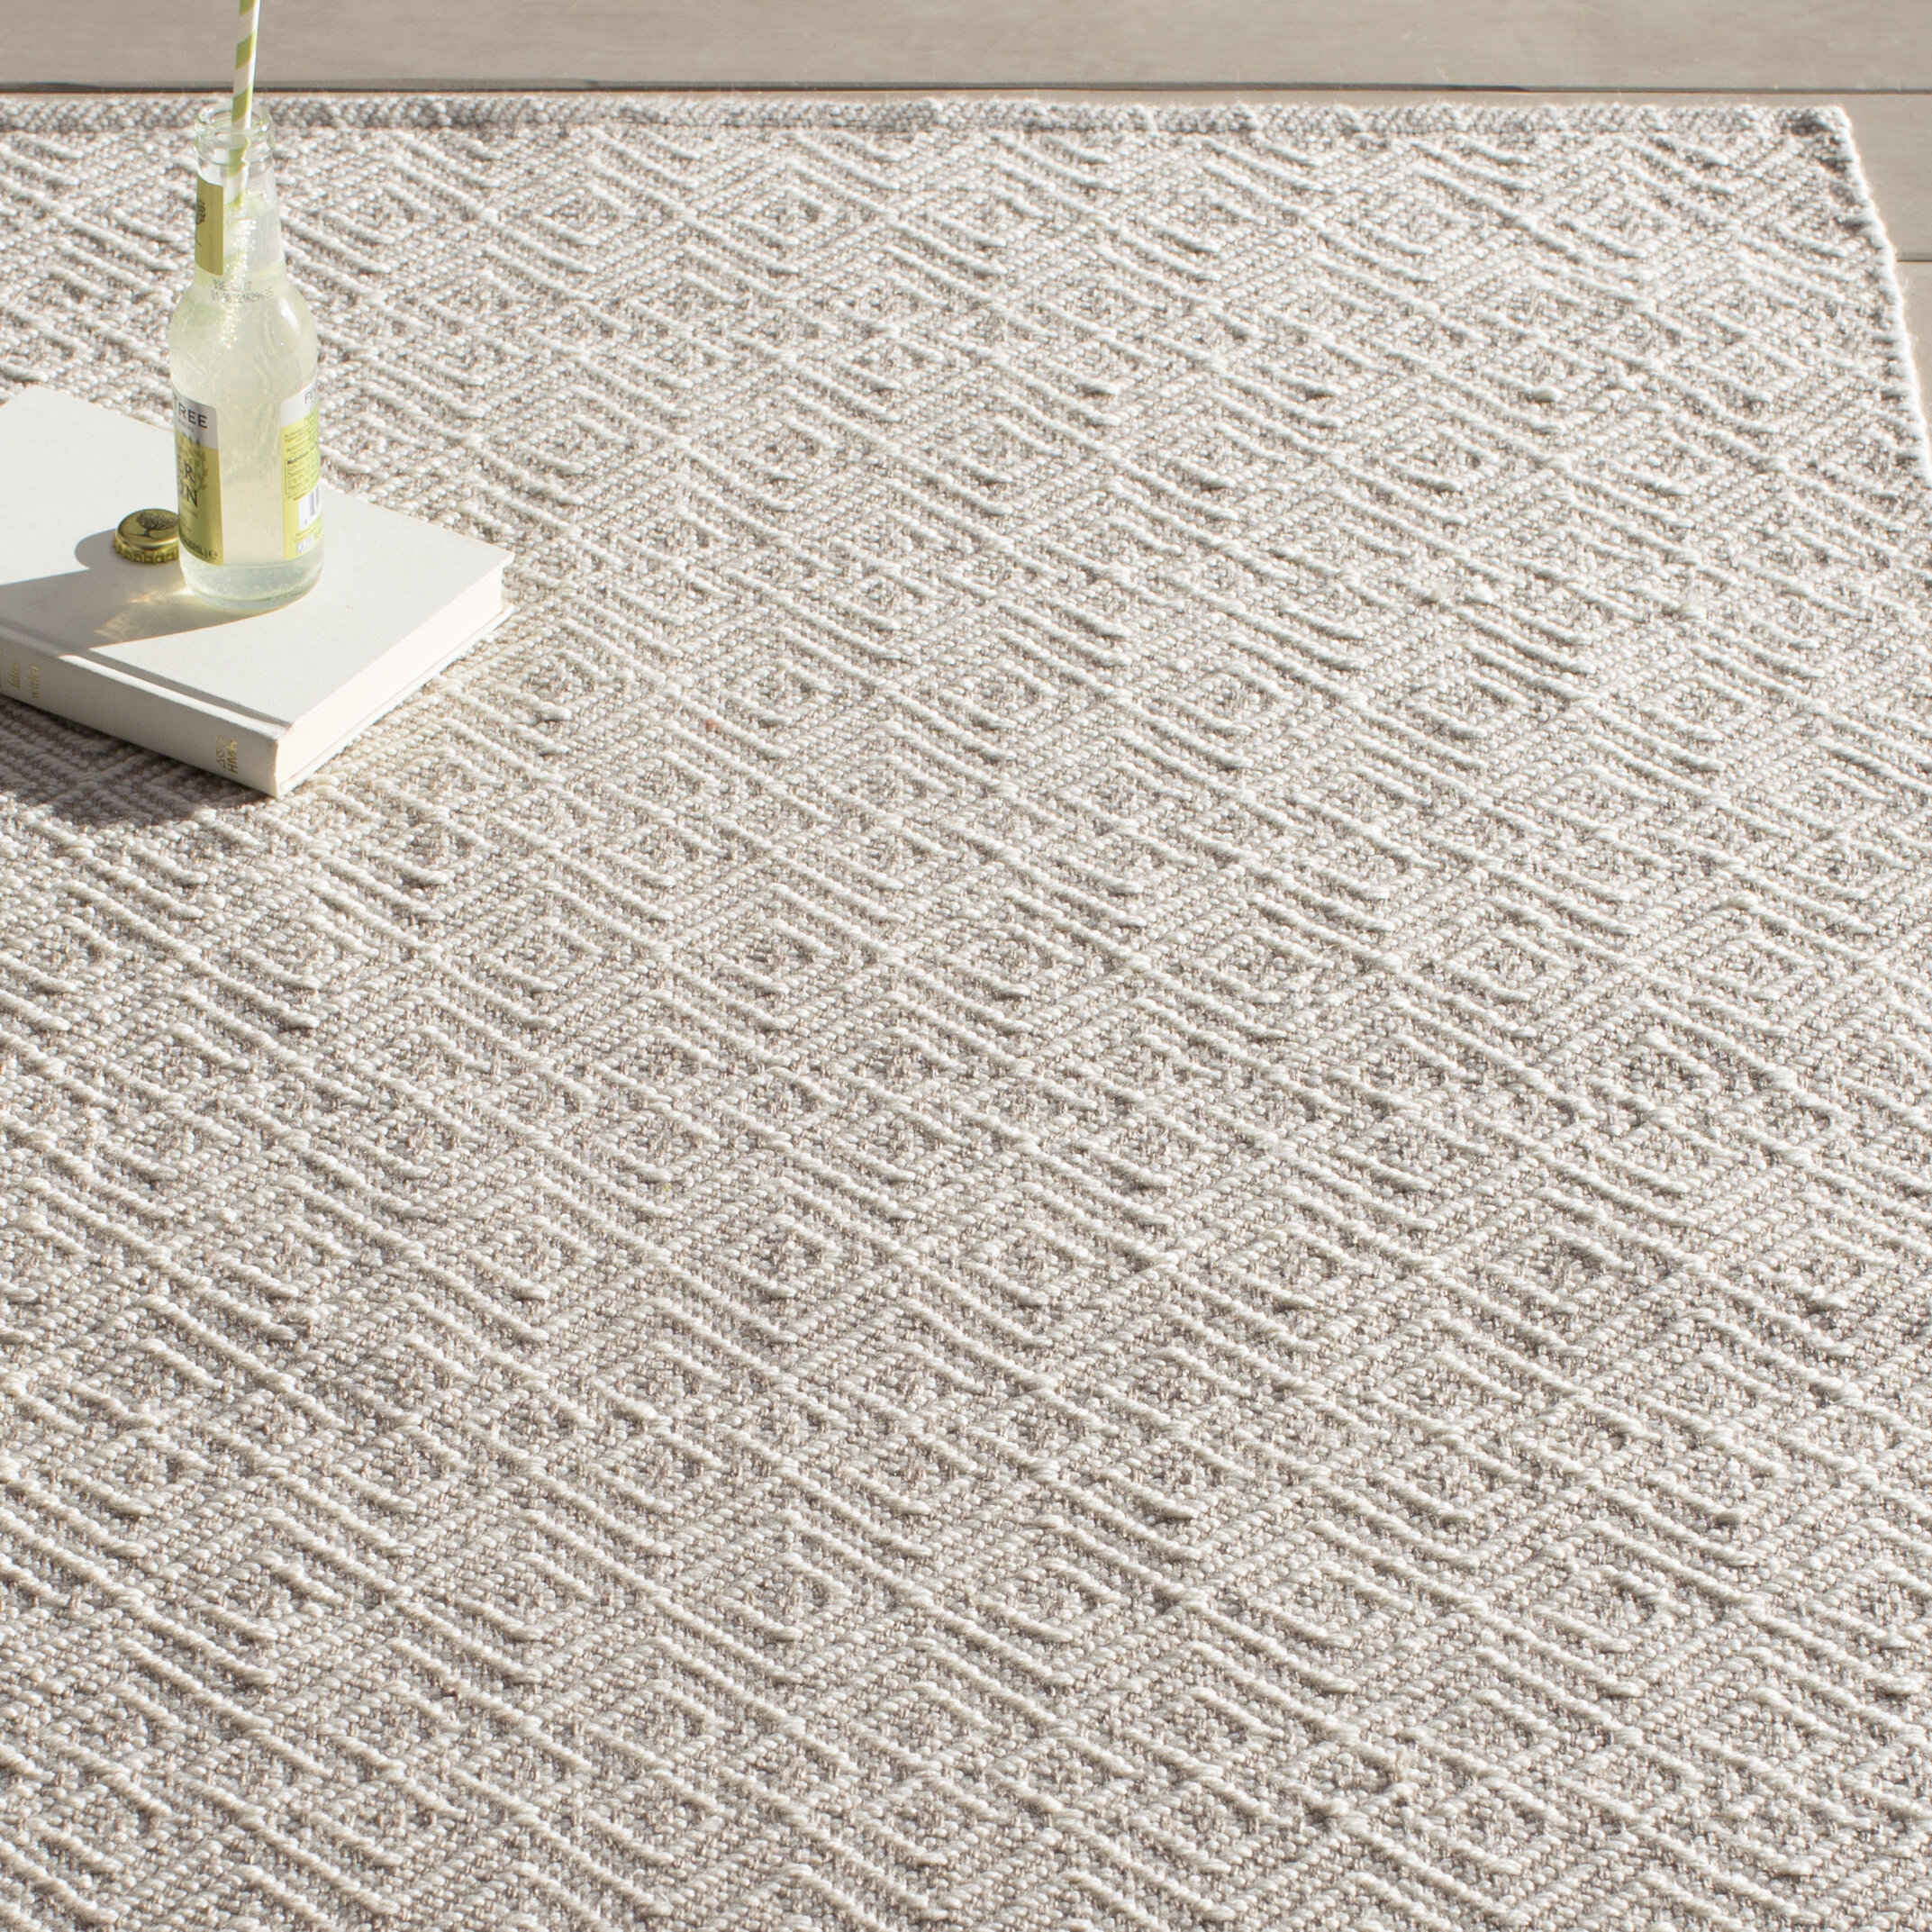 Bunny Williams Annabelle Hand Woven Grey Ivory Indoor Outdoor Area Rug Reviews Wayfair